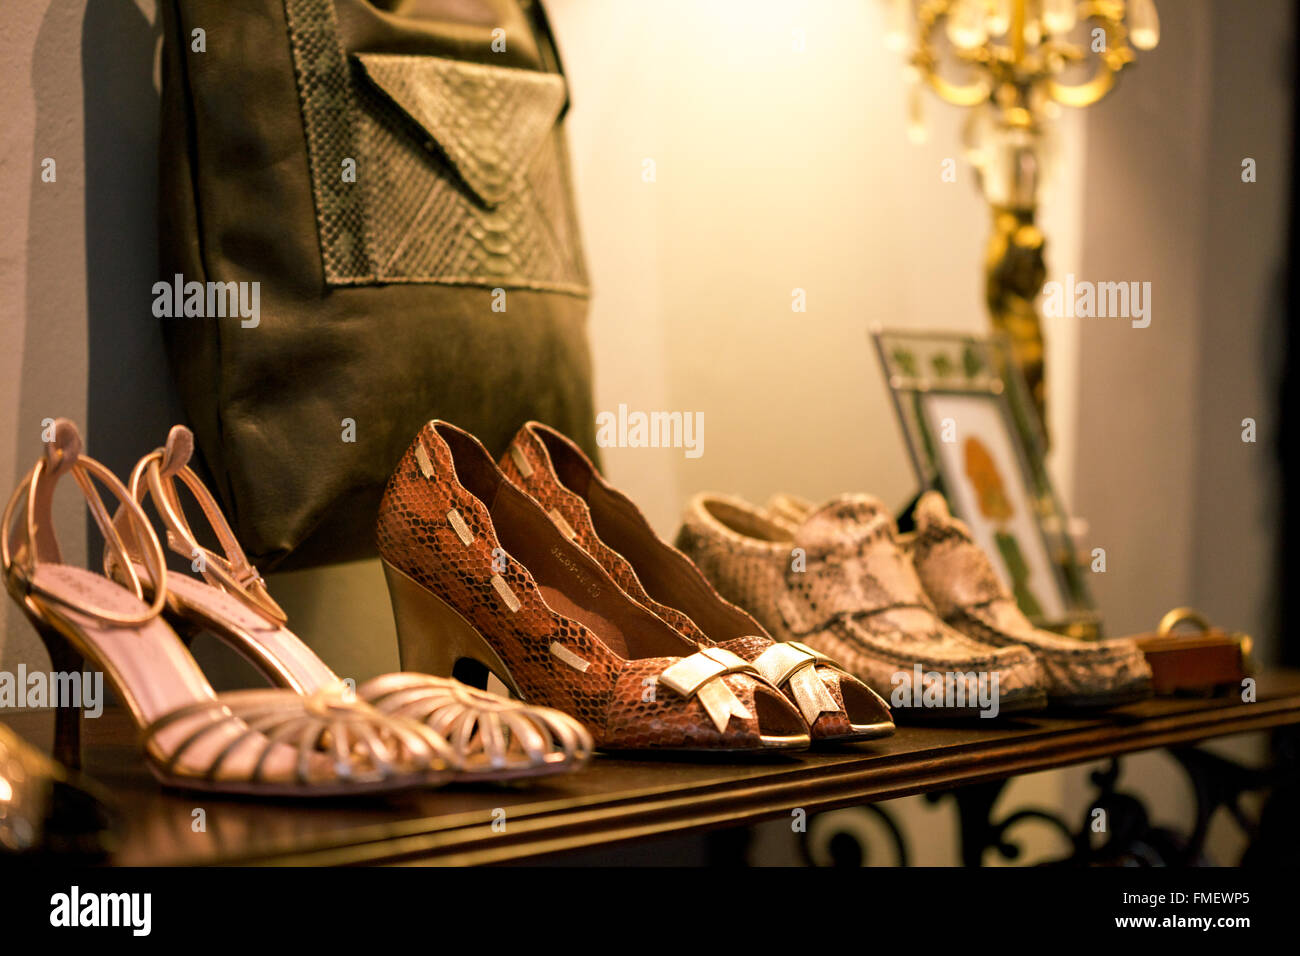 022e3d1dd475 Clothing Store Stock Photos   Clothing Store Stock Images - Alamy